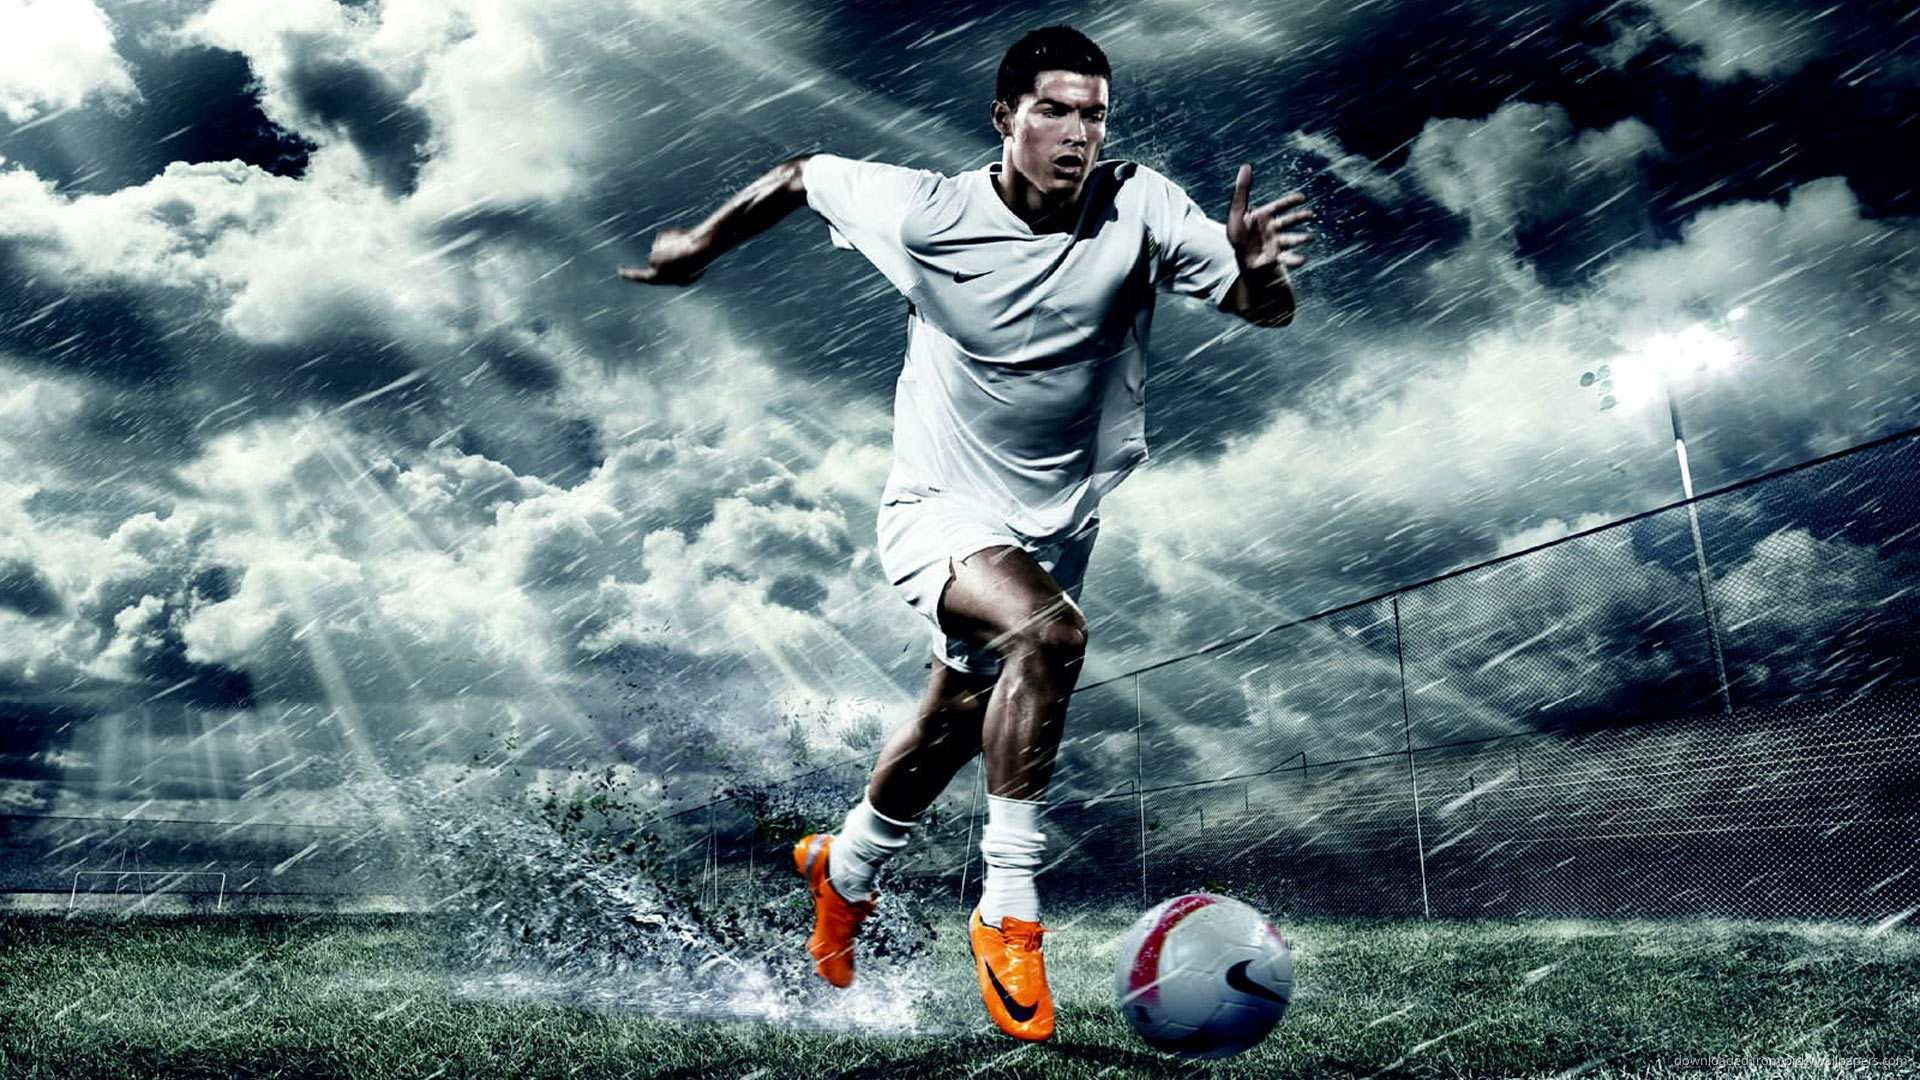 Free Soccer Wallpaper: Soccer HD Wallpapers ·①